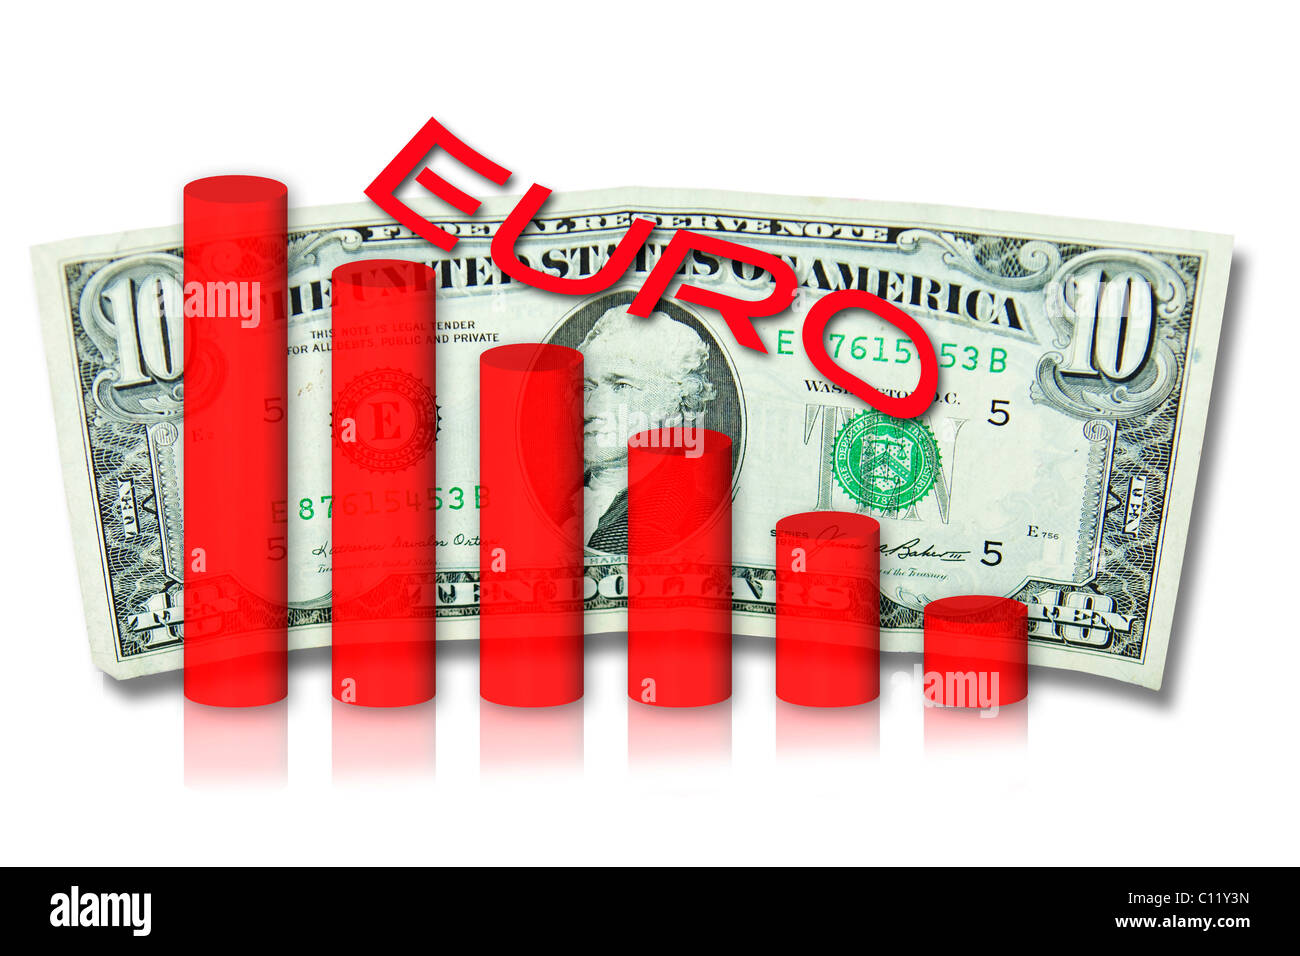 Symbolic image showing the decline of the euro against the U.S. dollar - Stock Image